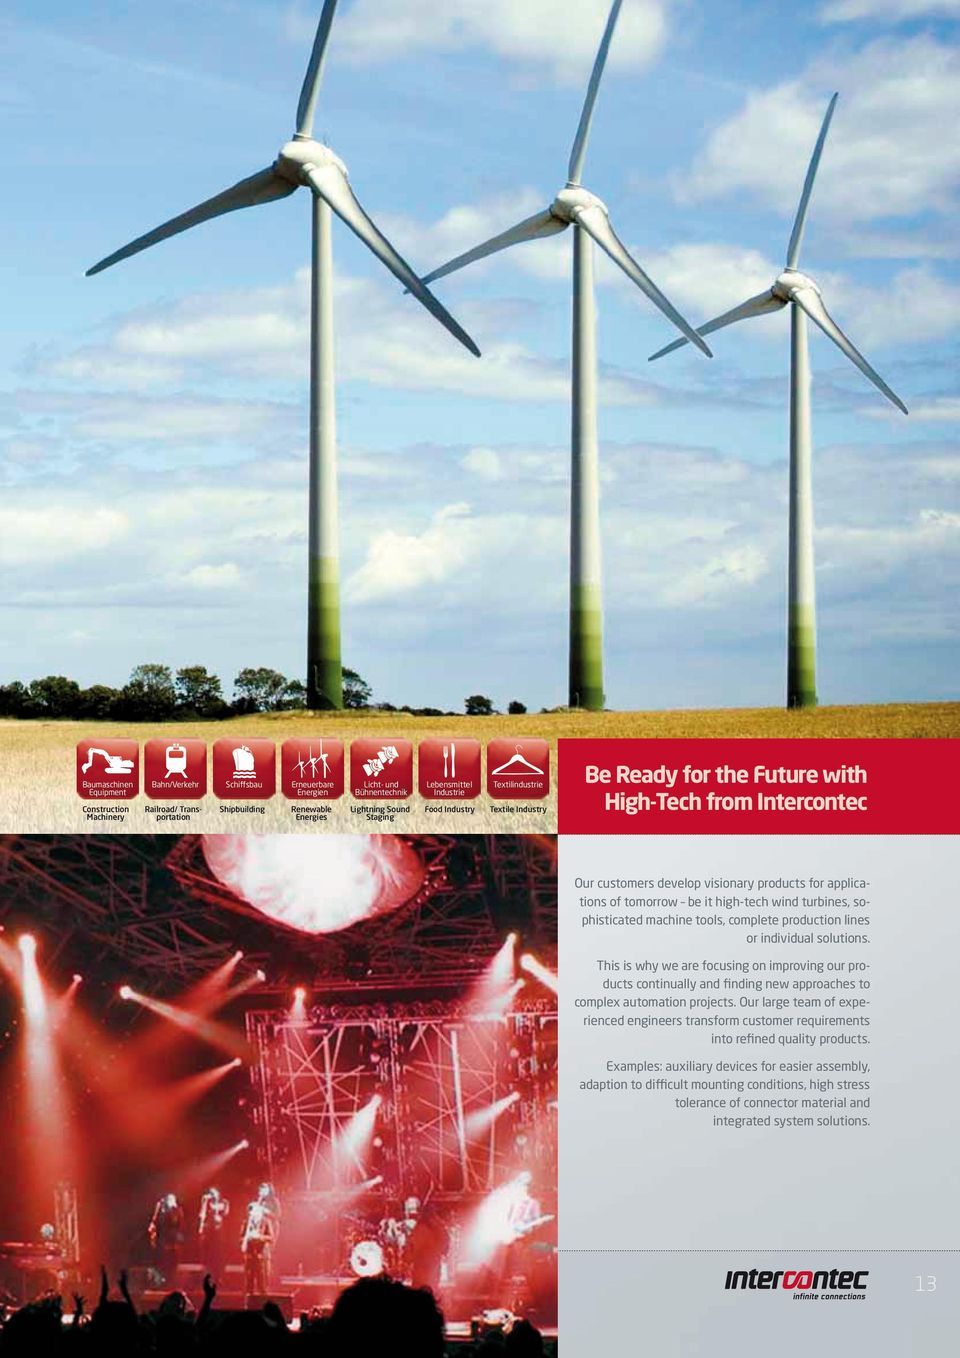 it high-tech wind turbines, sophisticated machine tools, complete production lines or individual solutions.